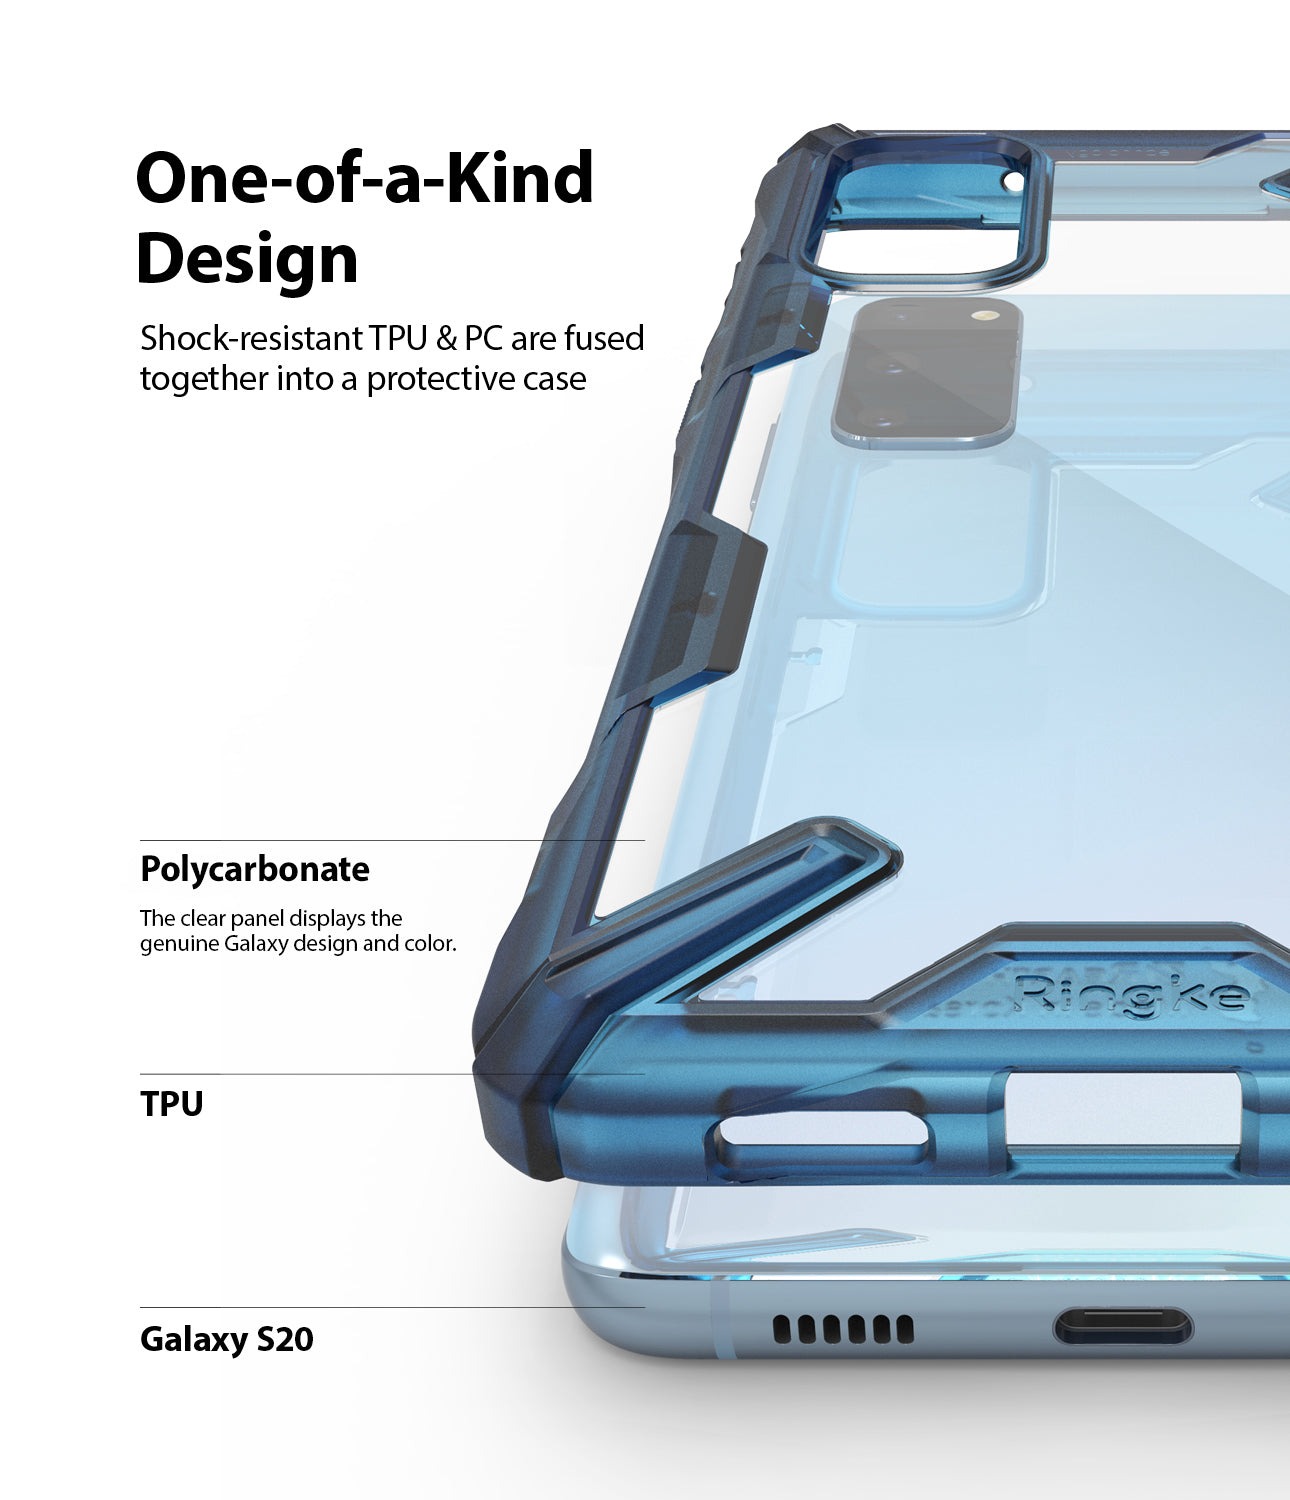 Ringke Galaxy S20 Fusion-X Case Space Blue Color